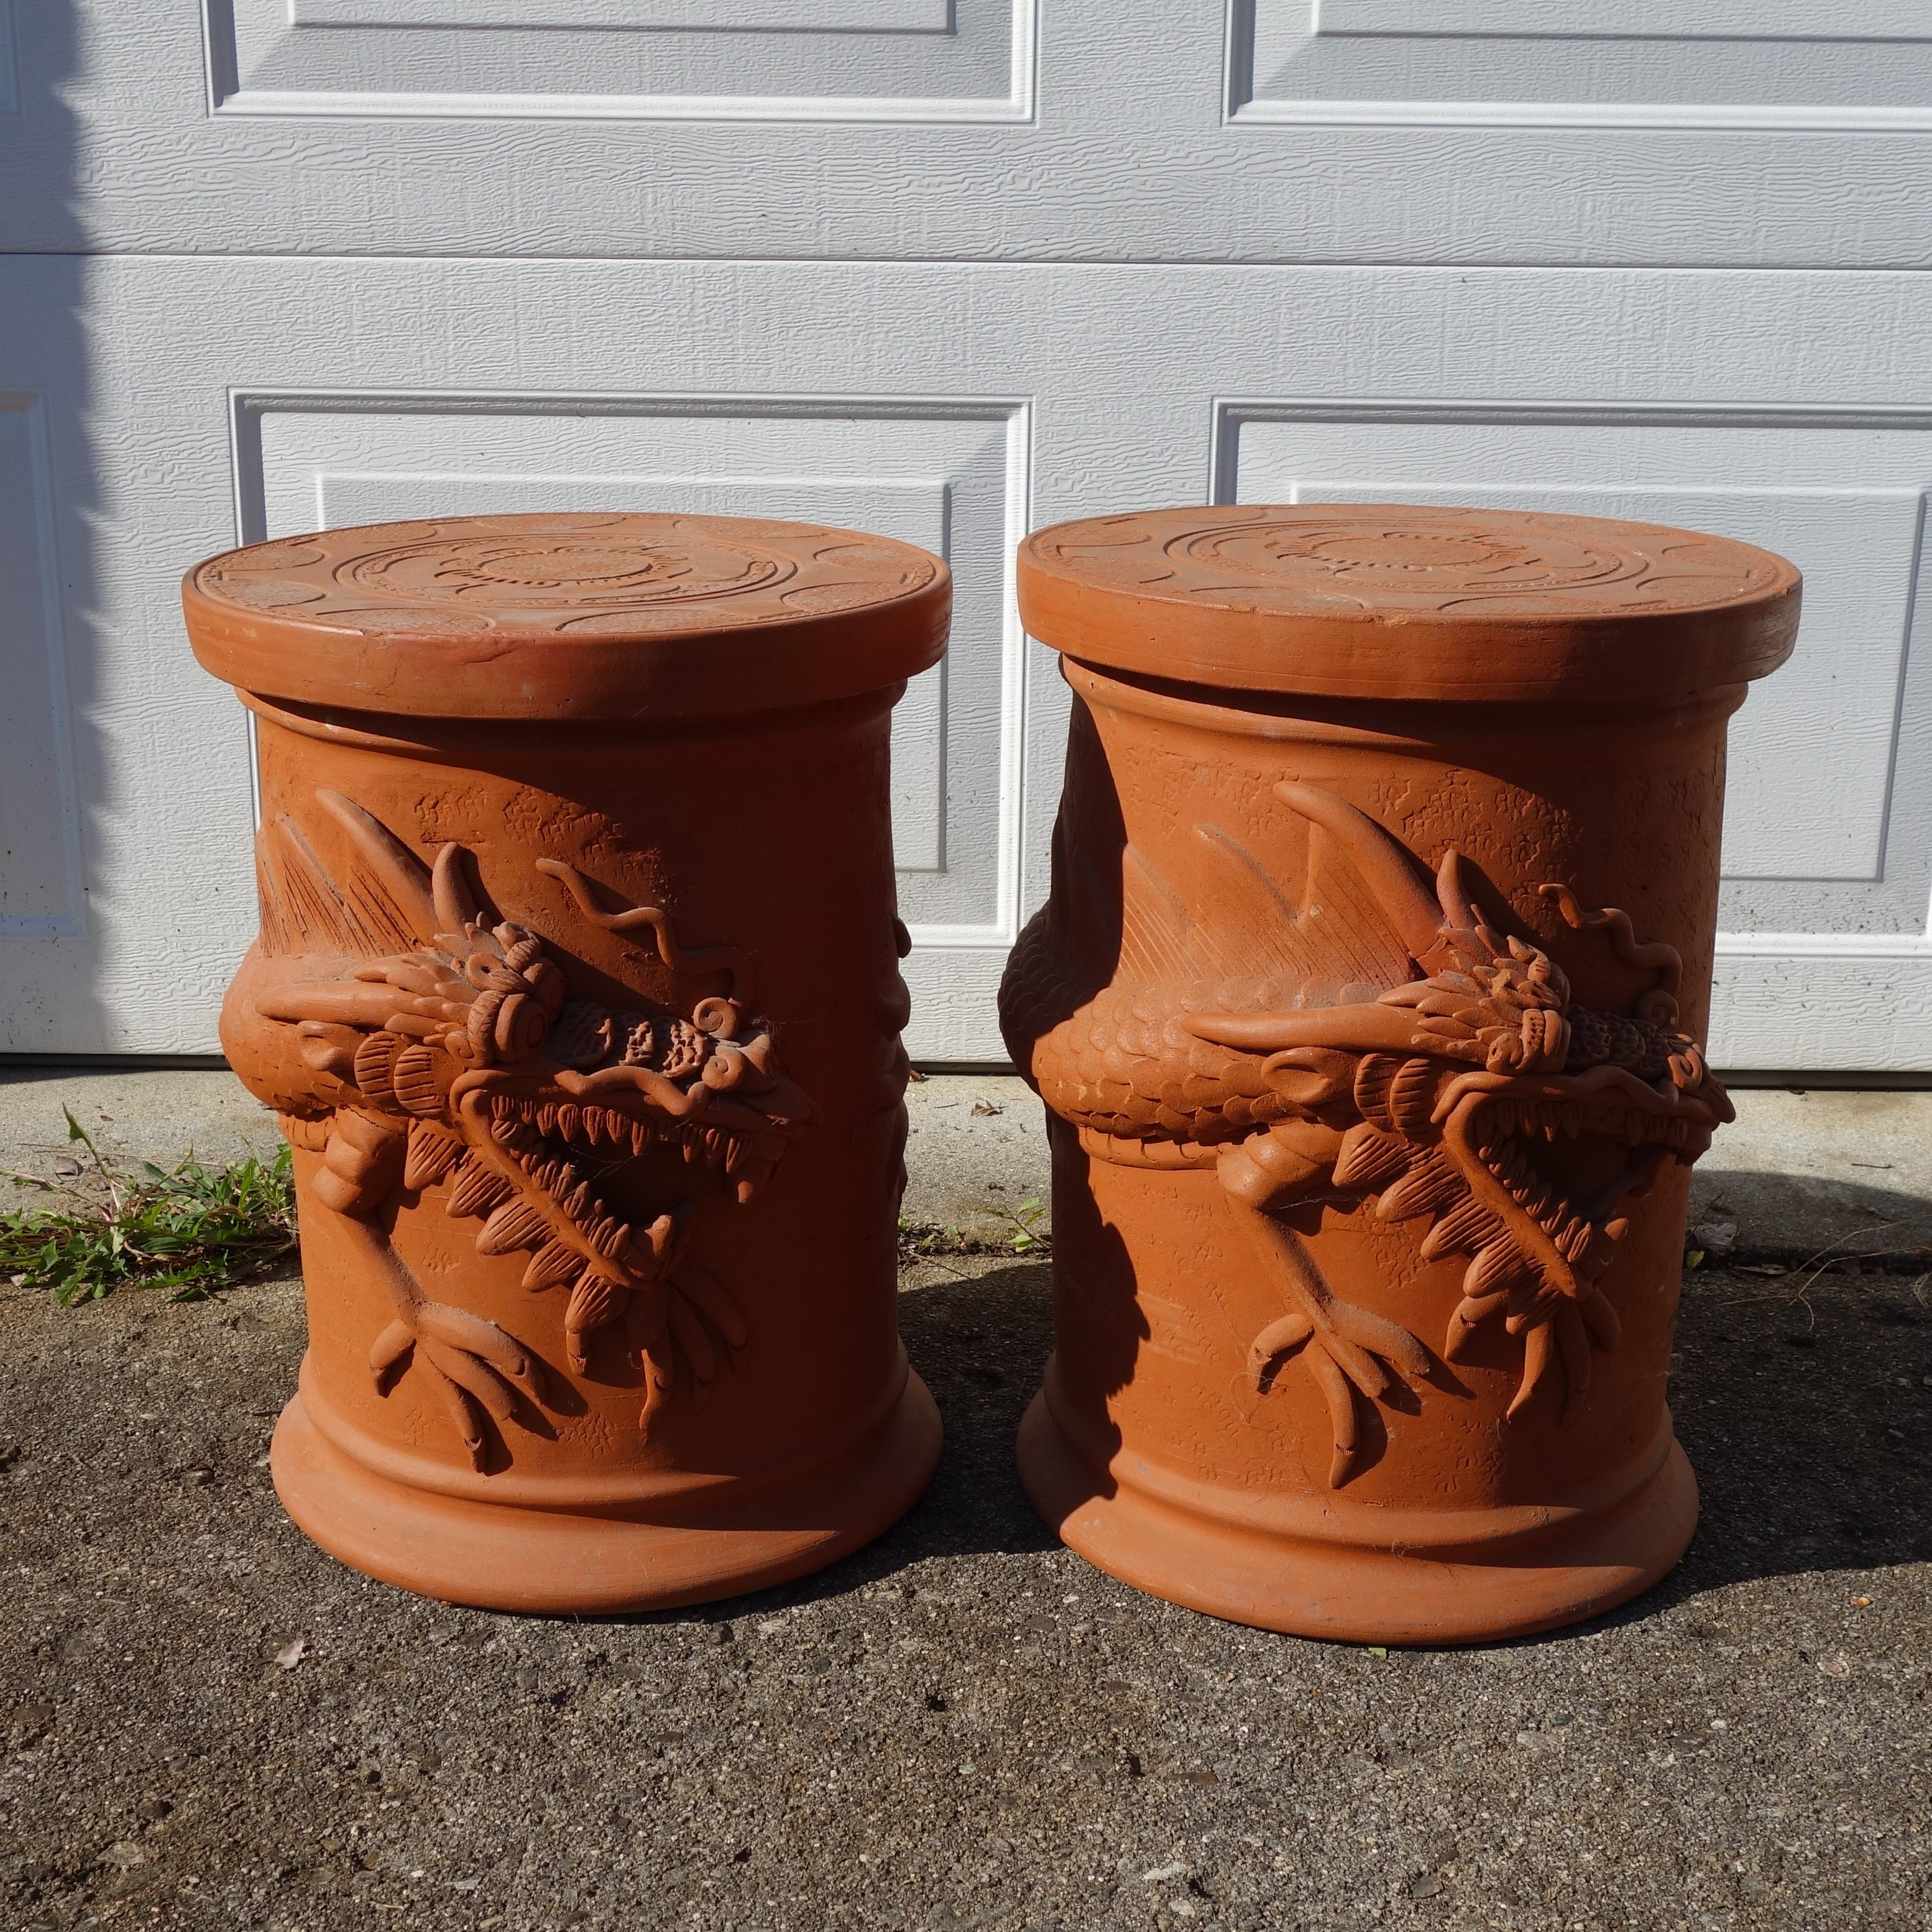 Terra Cotta Chinese Style Dragon Relief Garden Tables